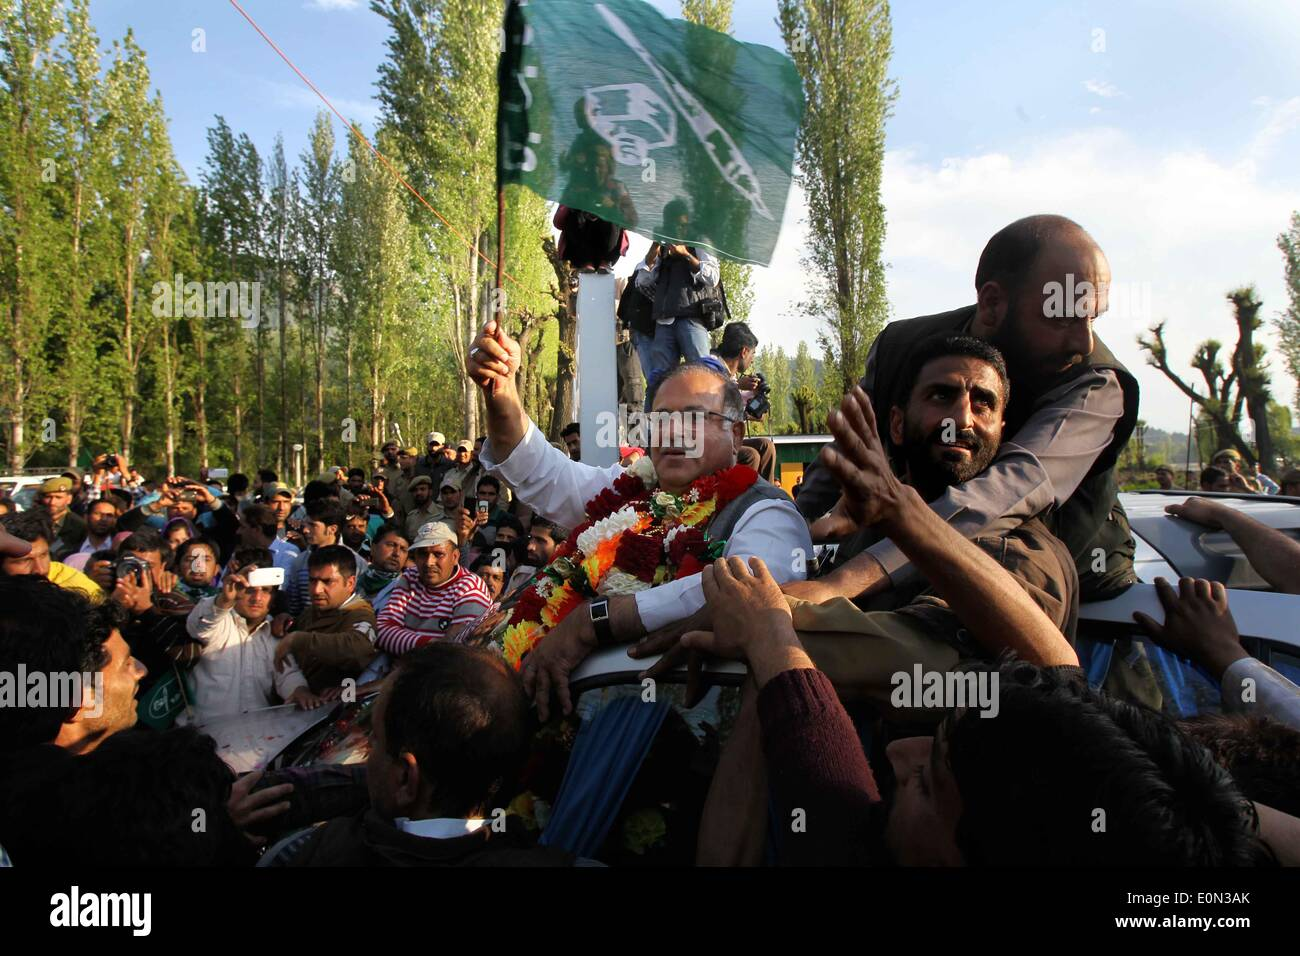 Srinagar, Indian-controlled Kashmir. 16th May, 2014. Tariq Hamid Kara, leader of Indian controlled Kashmir's main opposition party Peoples Democratic Party (PDP), holds a party flag as people greet him after he was declared winner for a parliamentary seat, in Srinagar, the summer capital of Indian-controlled Kashmir, May 16, 2014. The region's main opposition Peoples Democratic Party (PDP) and right-wing Hindu nationalist Bhartiya Janta Party (BJP) Friday swept polls by winning three seats each in the region, officials said. Credit:  Javed Dar/Xinhua/Alamy Live News - Stock Image